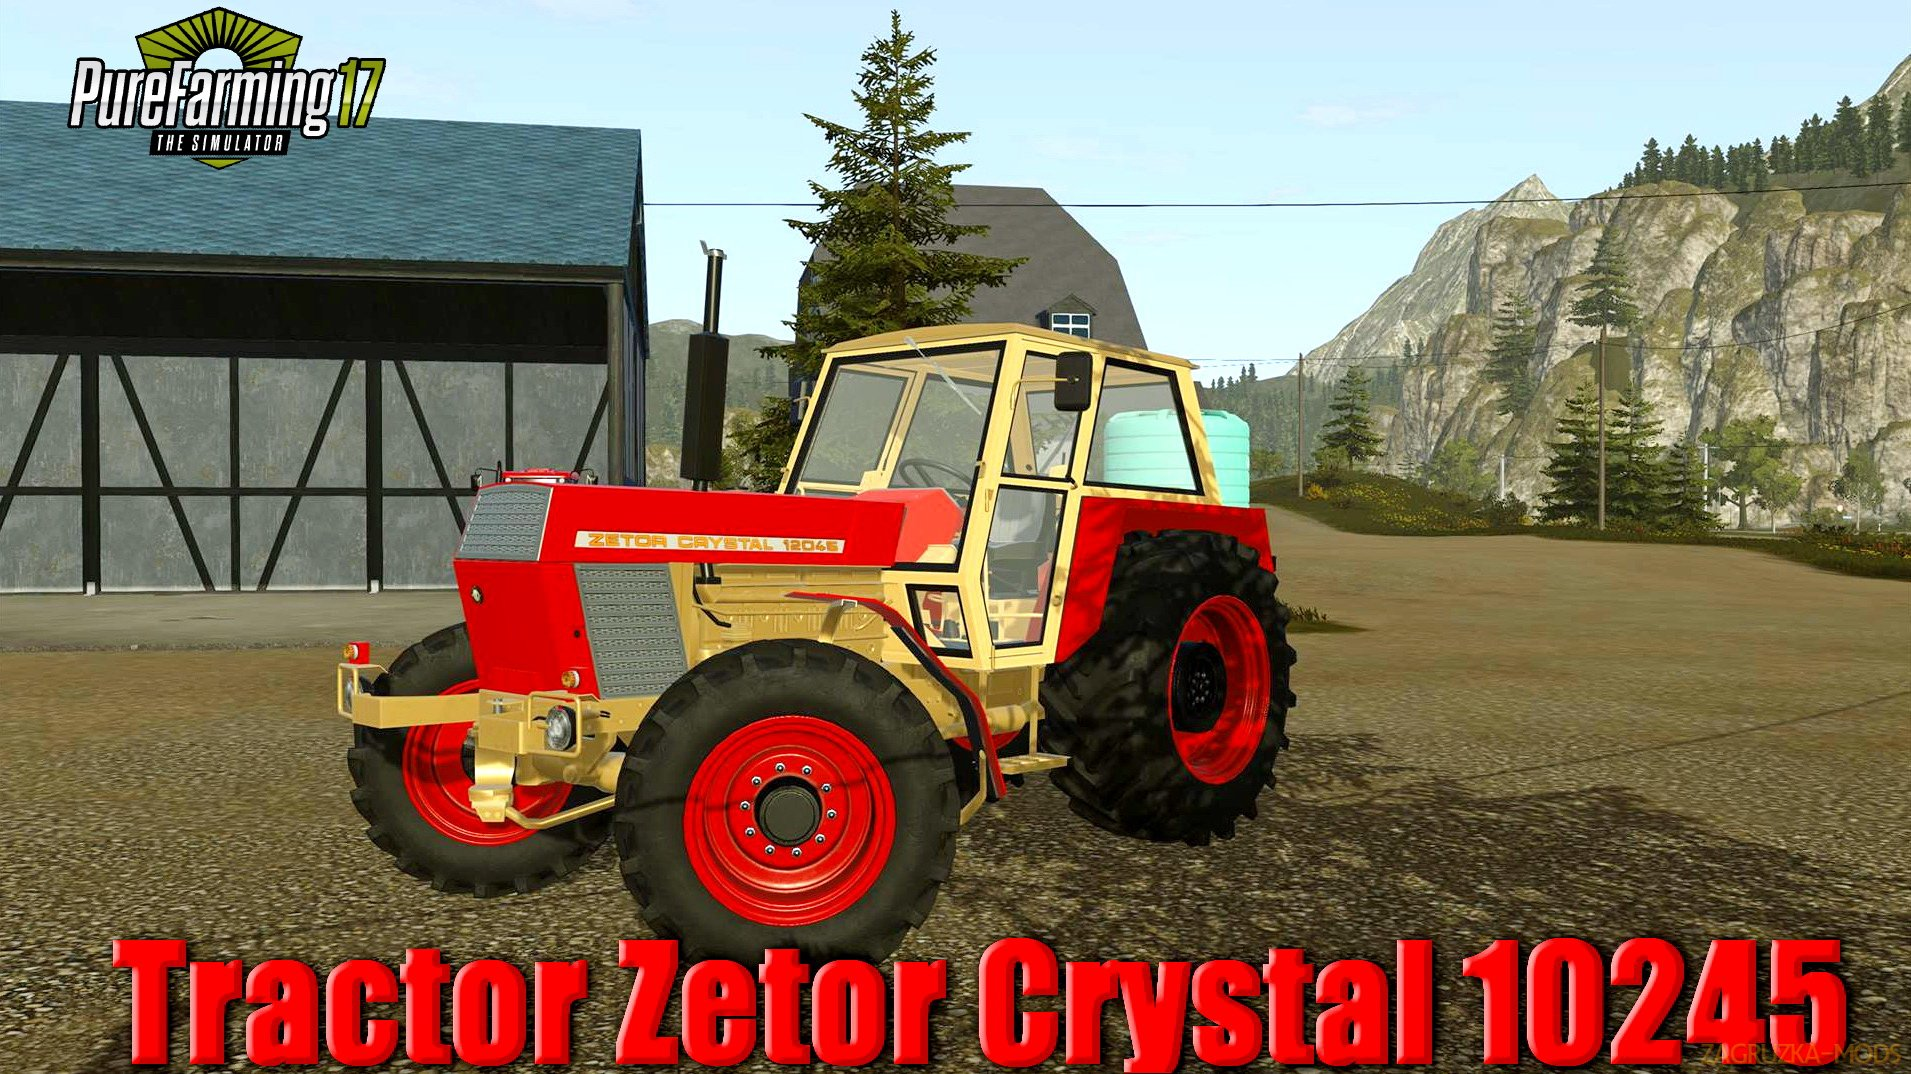 Tractor Zetor Crystal 10245 v1.0 for Pure Farming 2018